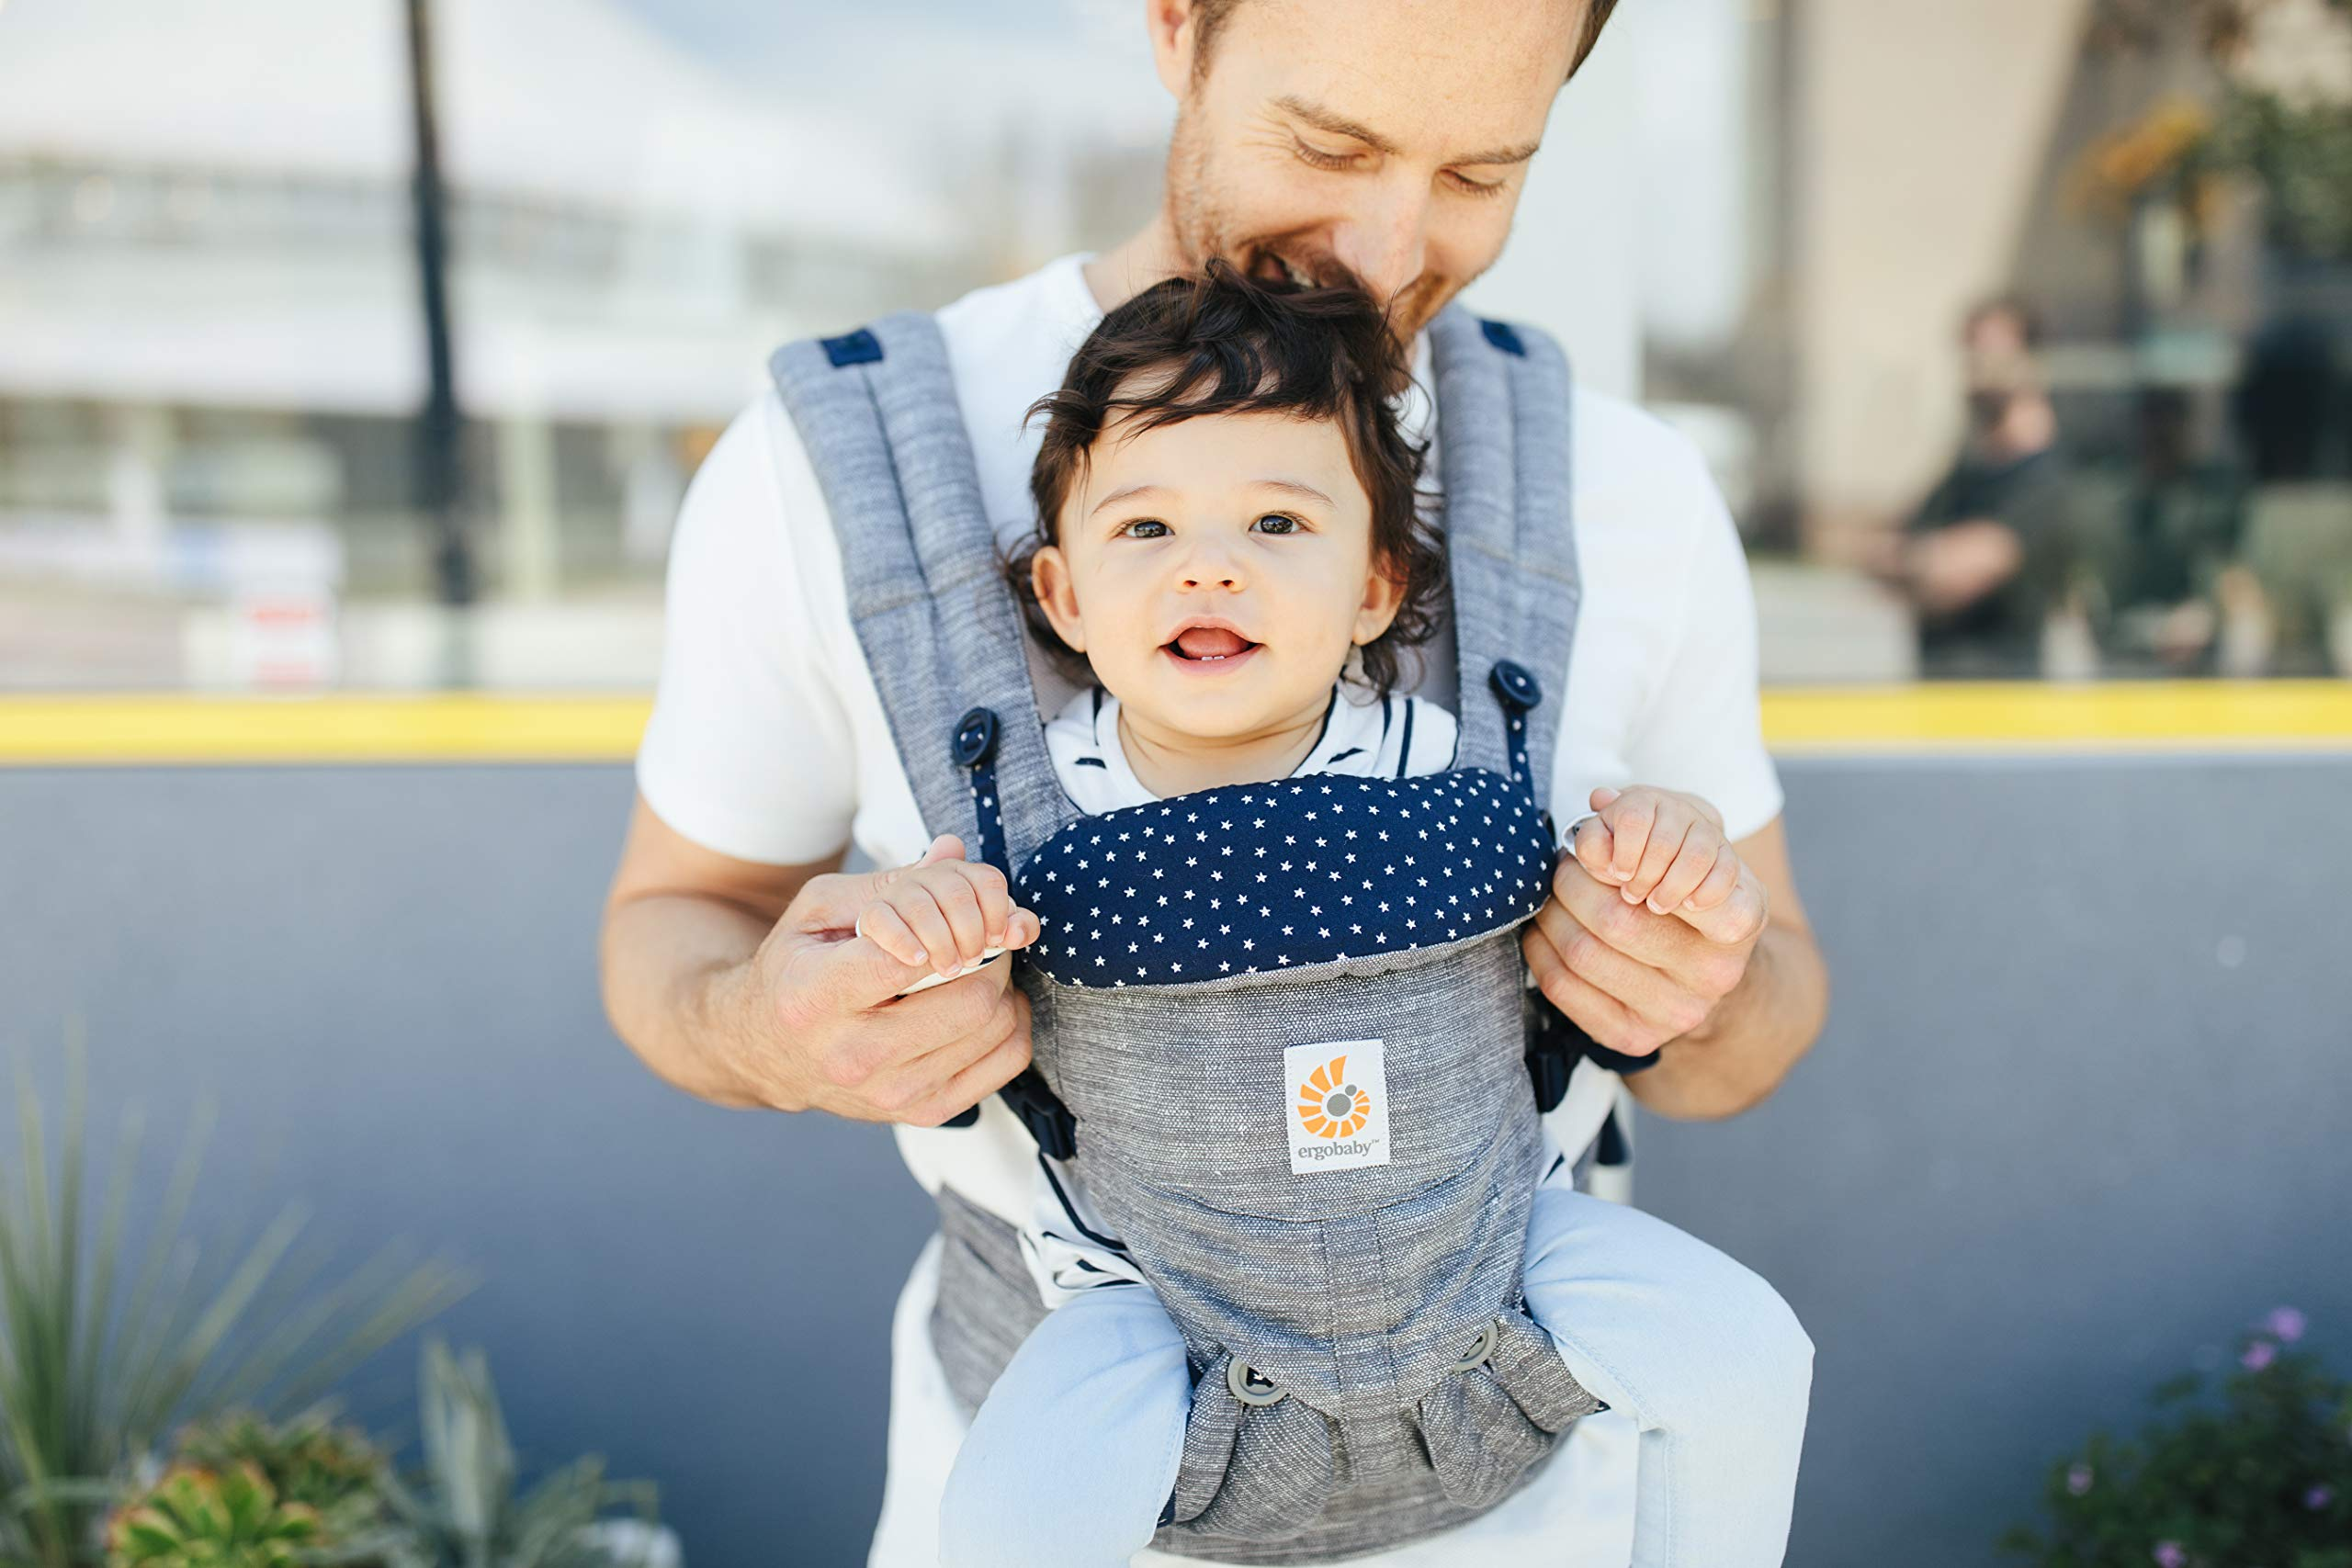 ERGObaby Baby Carrier for Newborn to Toddler, 4-Position Omni 360 Star Dust, Ergonomic Child Carrier Backpack Ergobaby Baby carrier with 4 ergonomic wearing positions: parent facing, on the back, on the hips and on the front facing outwards. Adapts to baby's growth: Infant baby carrier newborn to toddler (7-33 lbs./ 3.2 to 20 kg), no infant insert needed. Tuck-away baby hood for sun protection (UPF 50+) and privacy. NEW - Maximum comfort for parent: Longwear comfort with lumbar support waistbelt and extra cushioned shoulder straps. 3